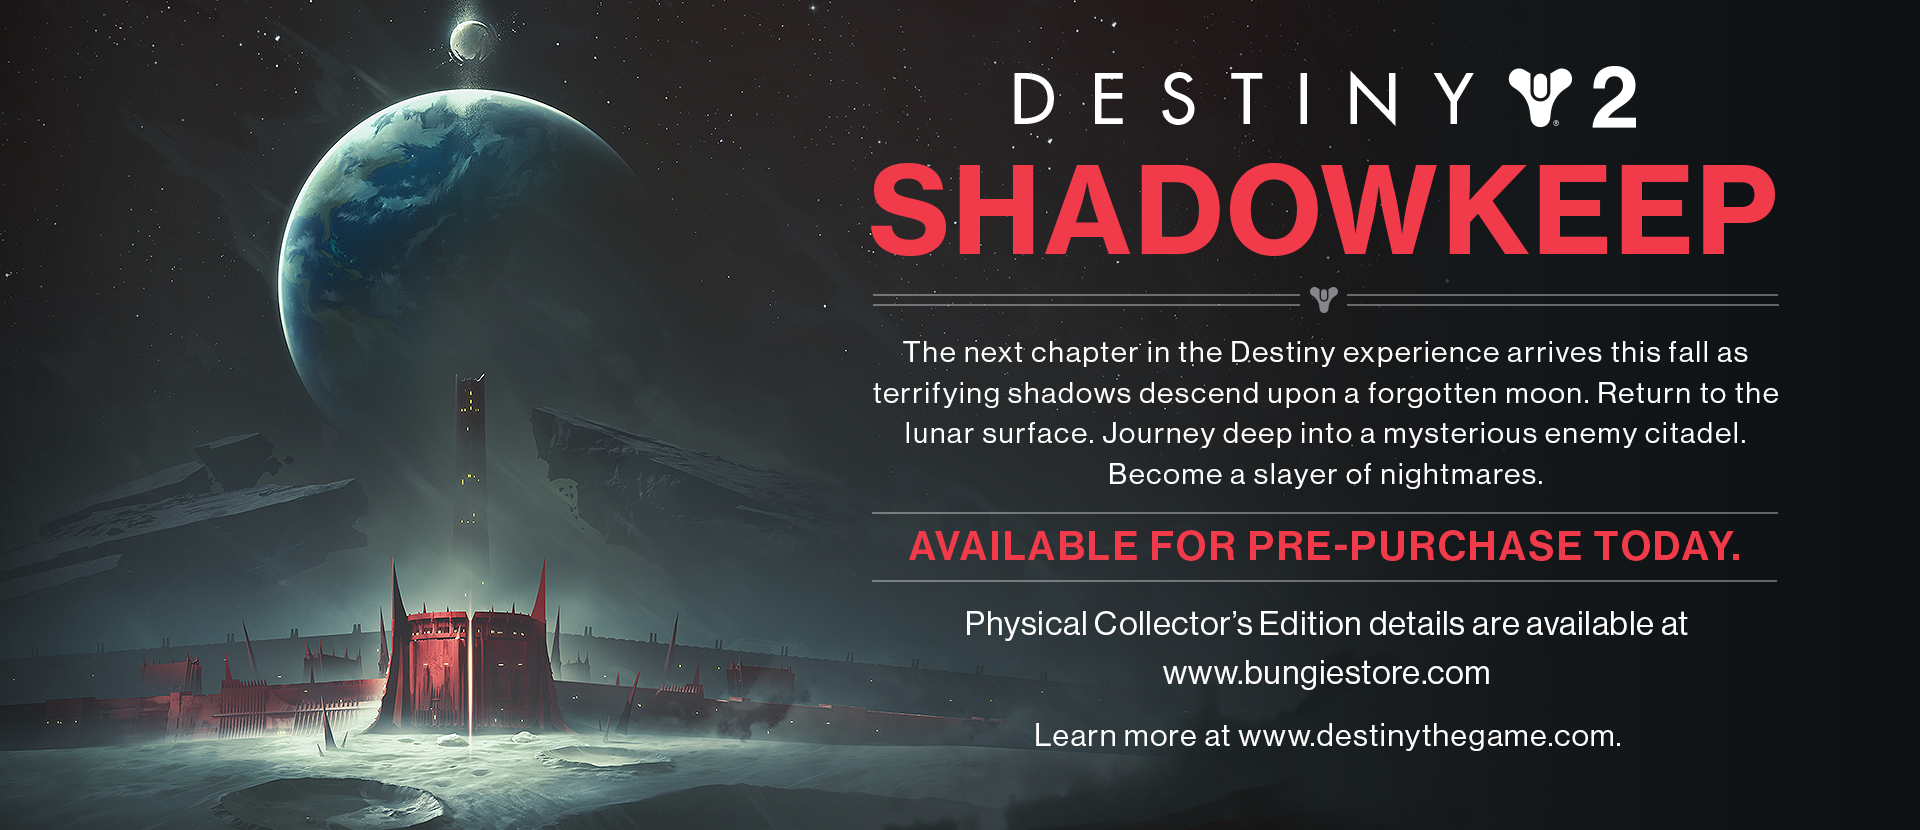 Destiny 2: Shadowkeep expansion possibly leaked